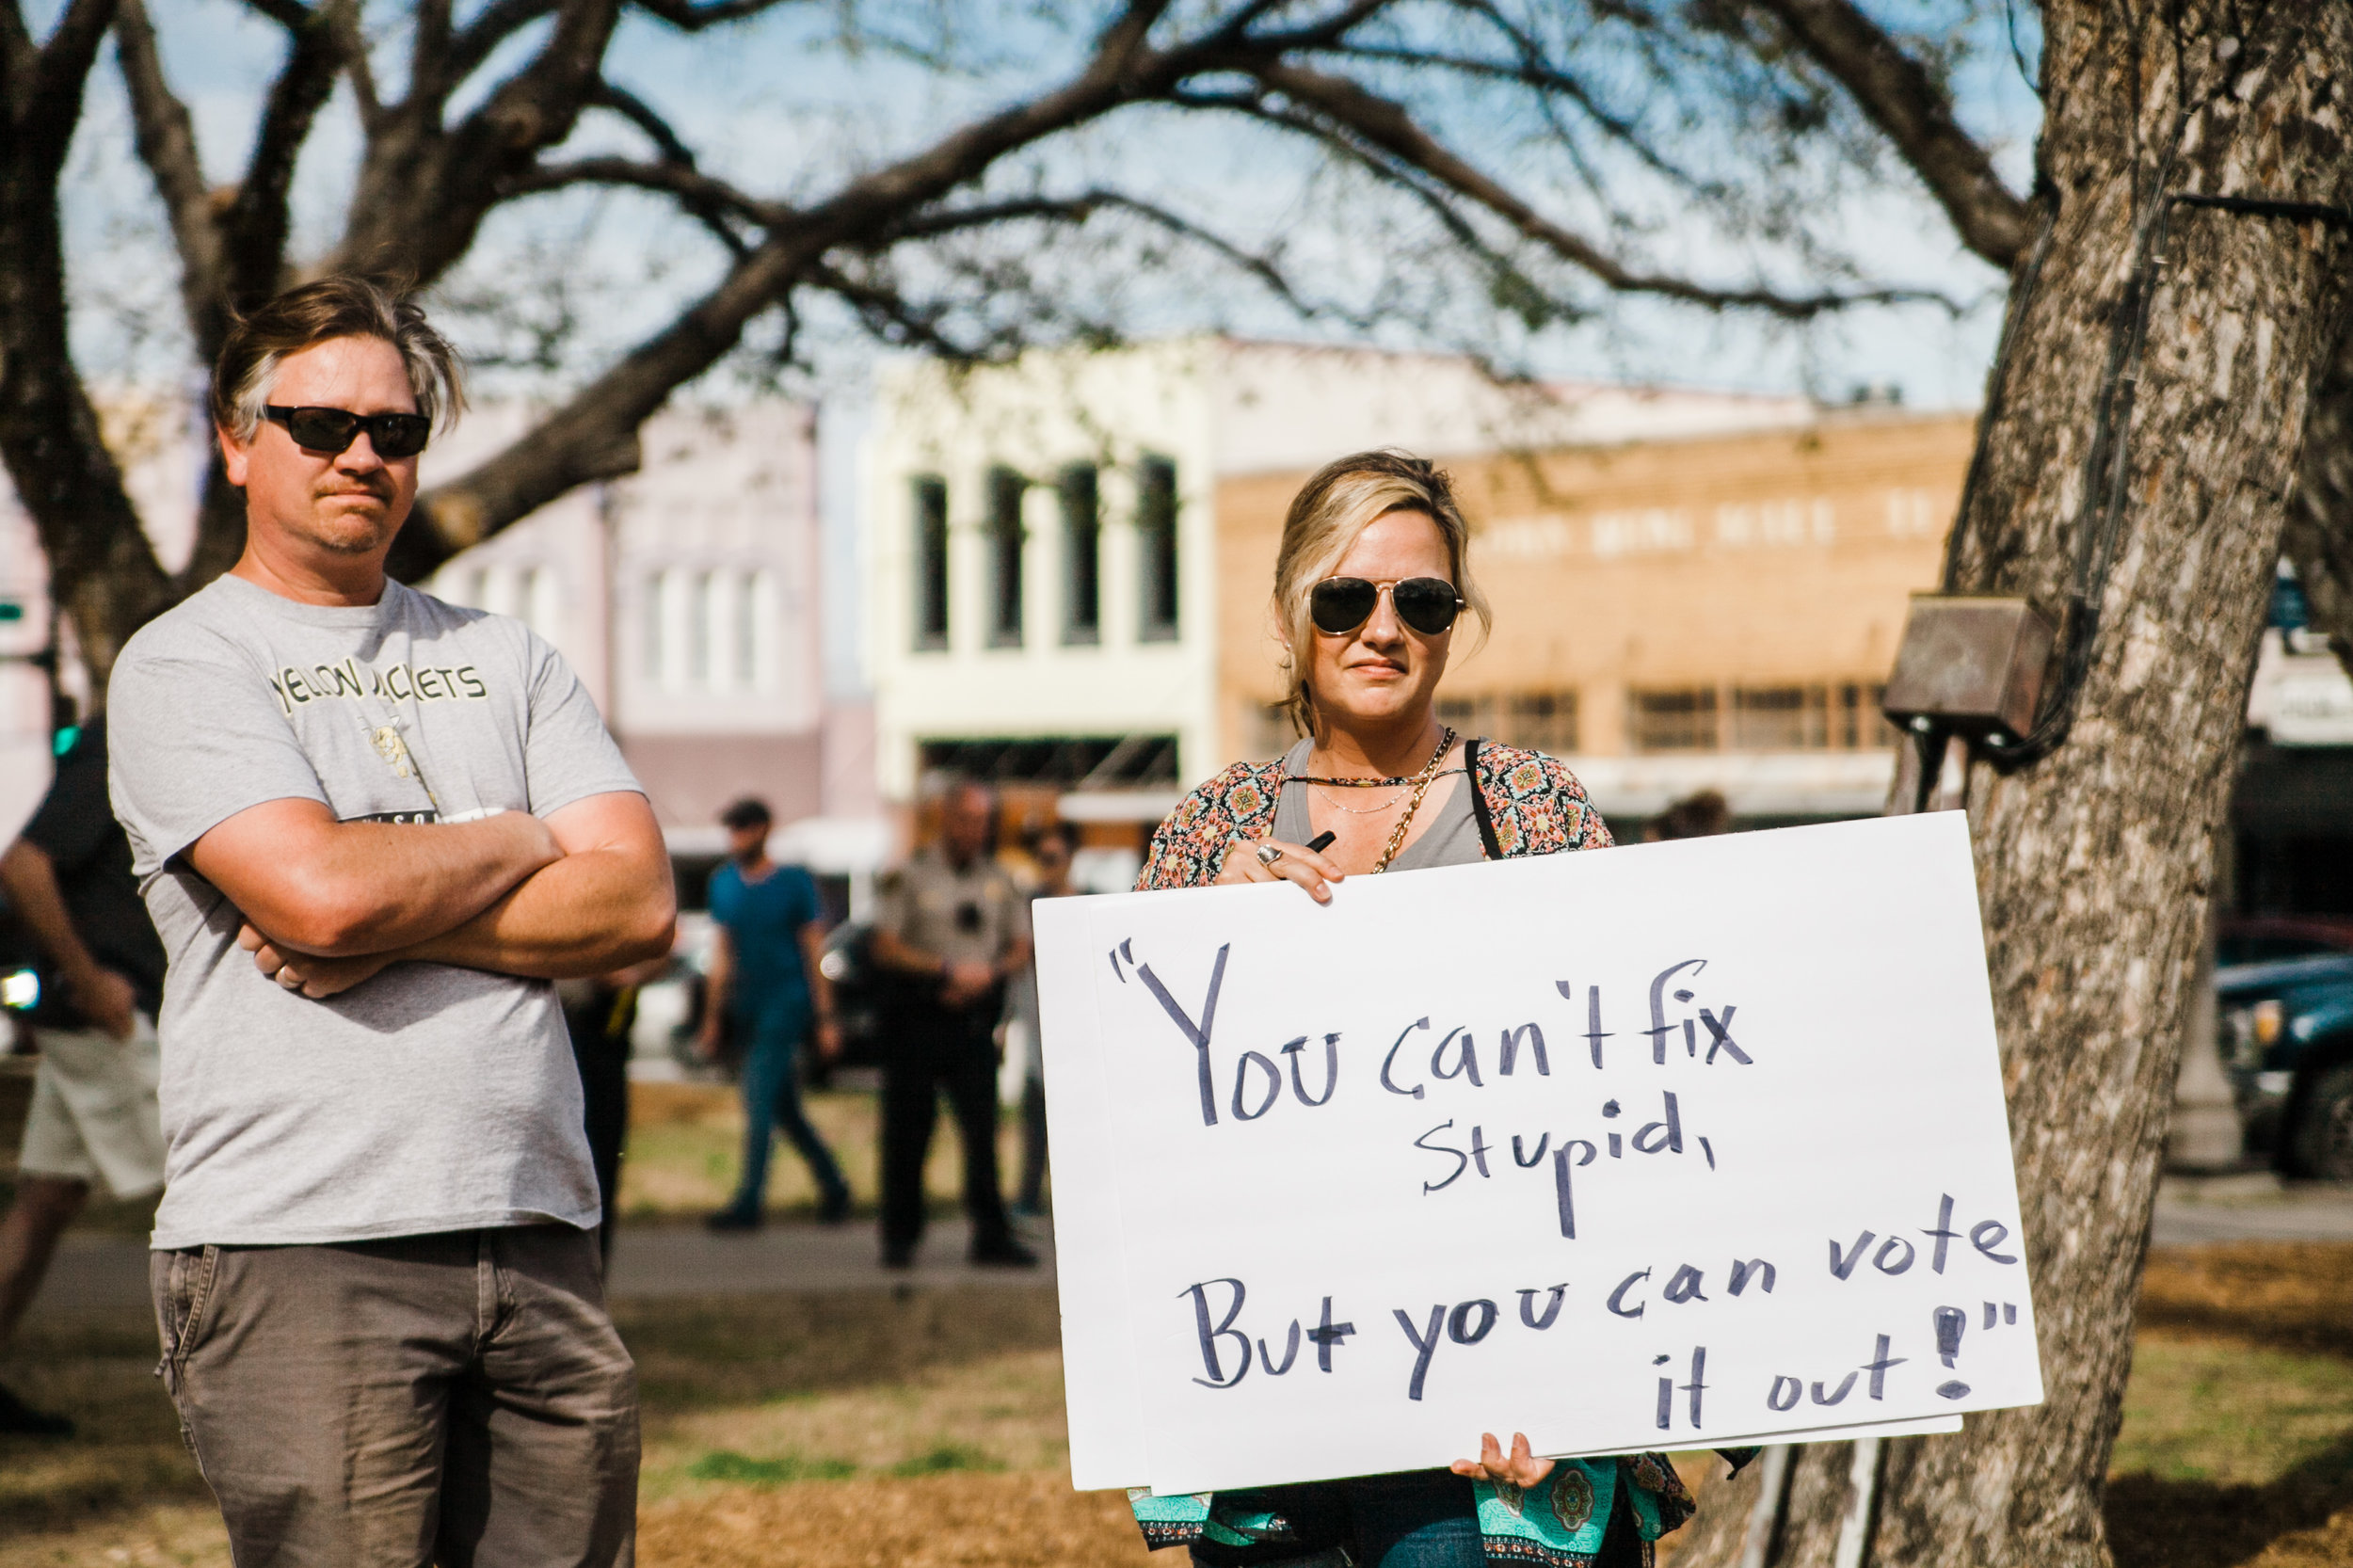 """""""You can't fix stupid, but you can vote it out."""" (Image via Unsplash.)   When is elected-accountability essential and when is there a better way of achieving outcomes for communities?"""